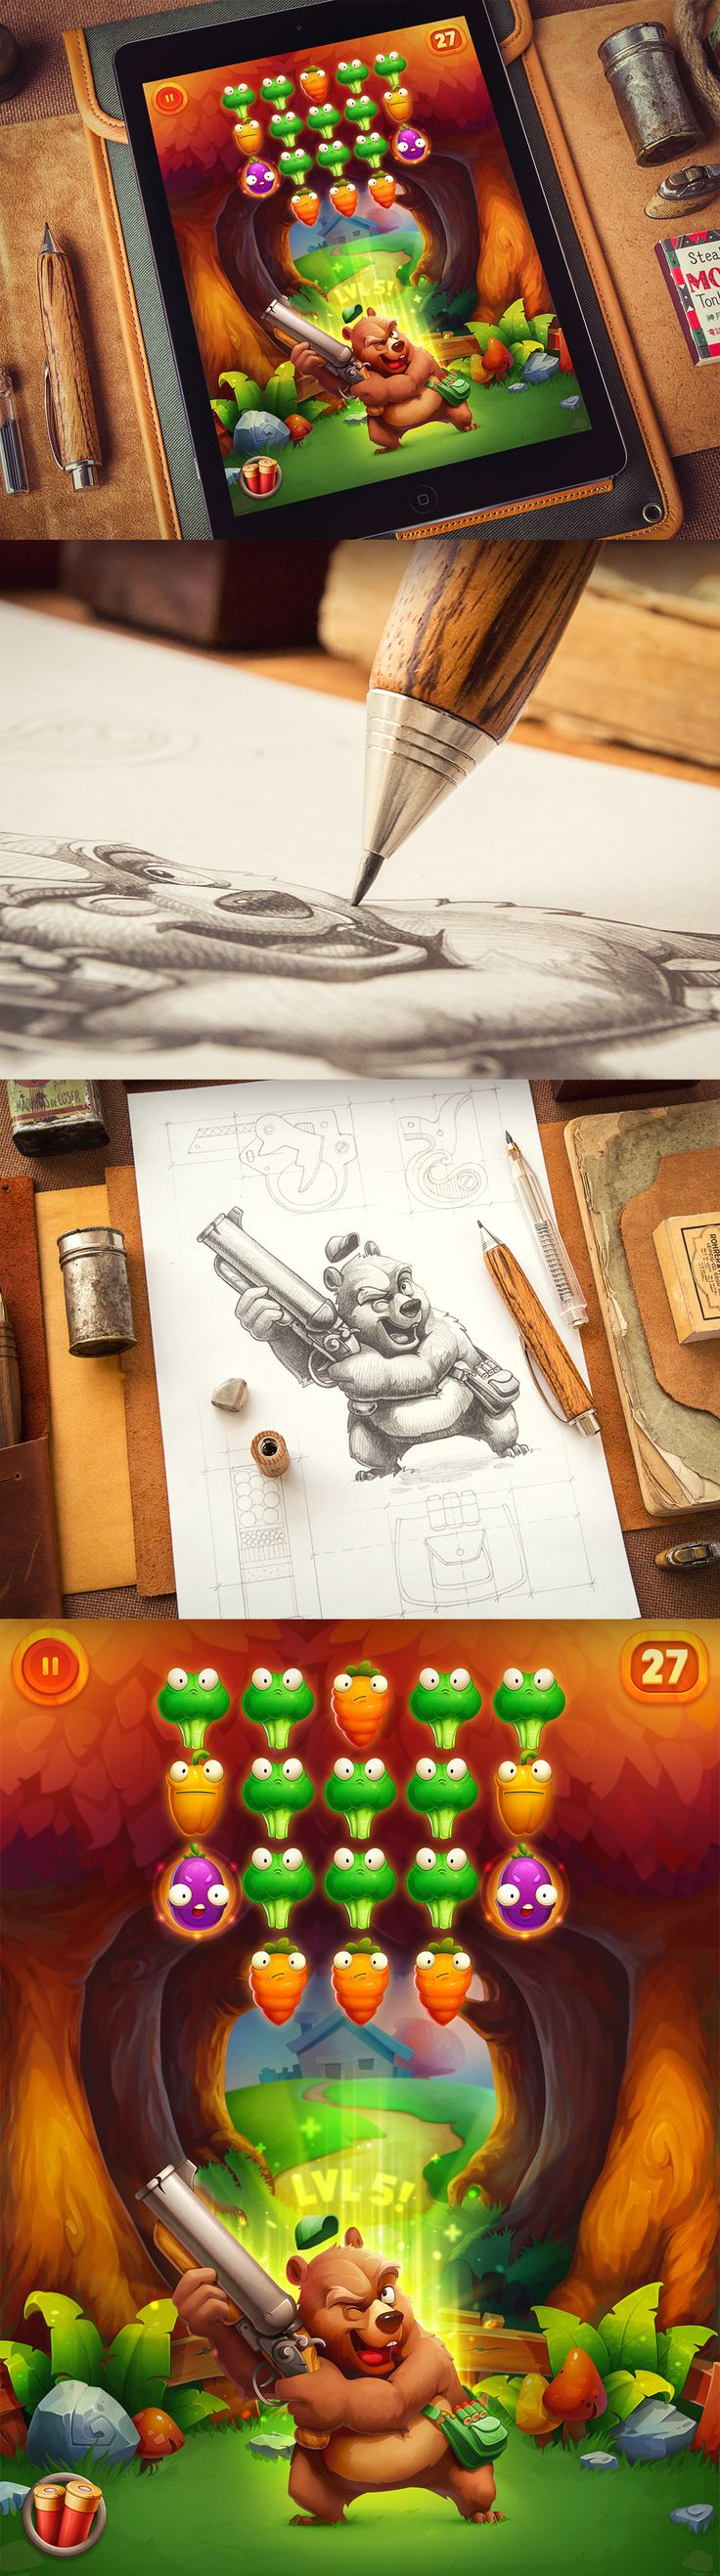 Character Design: part 2 on Behance